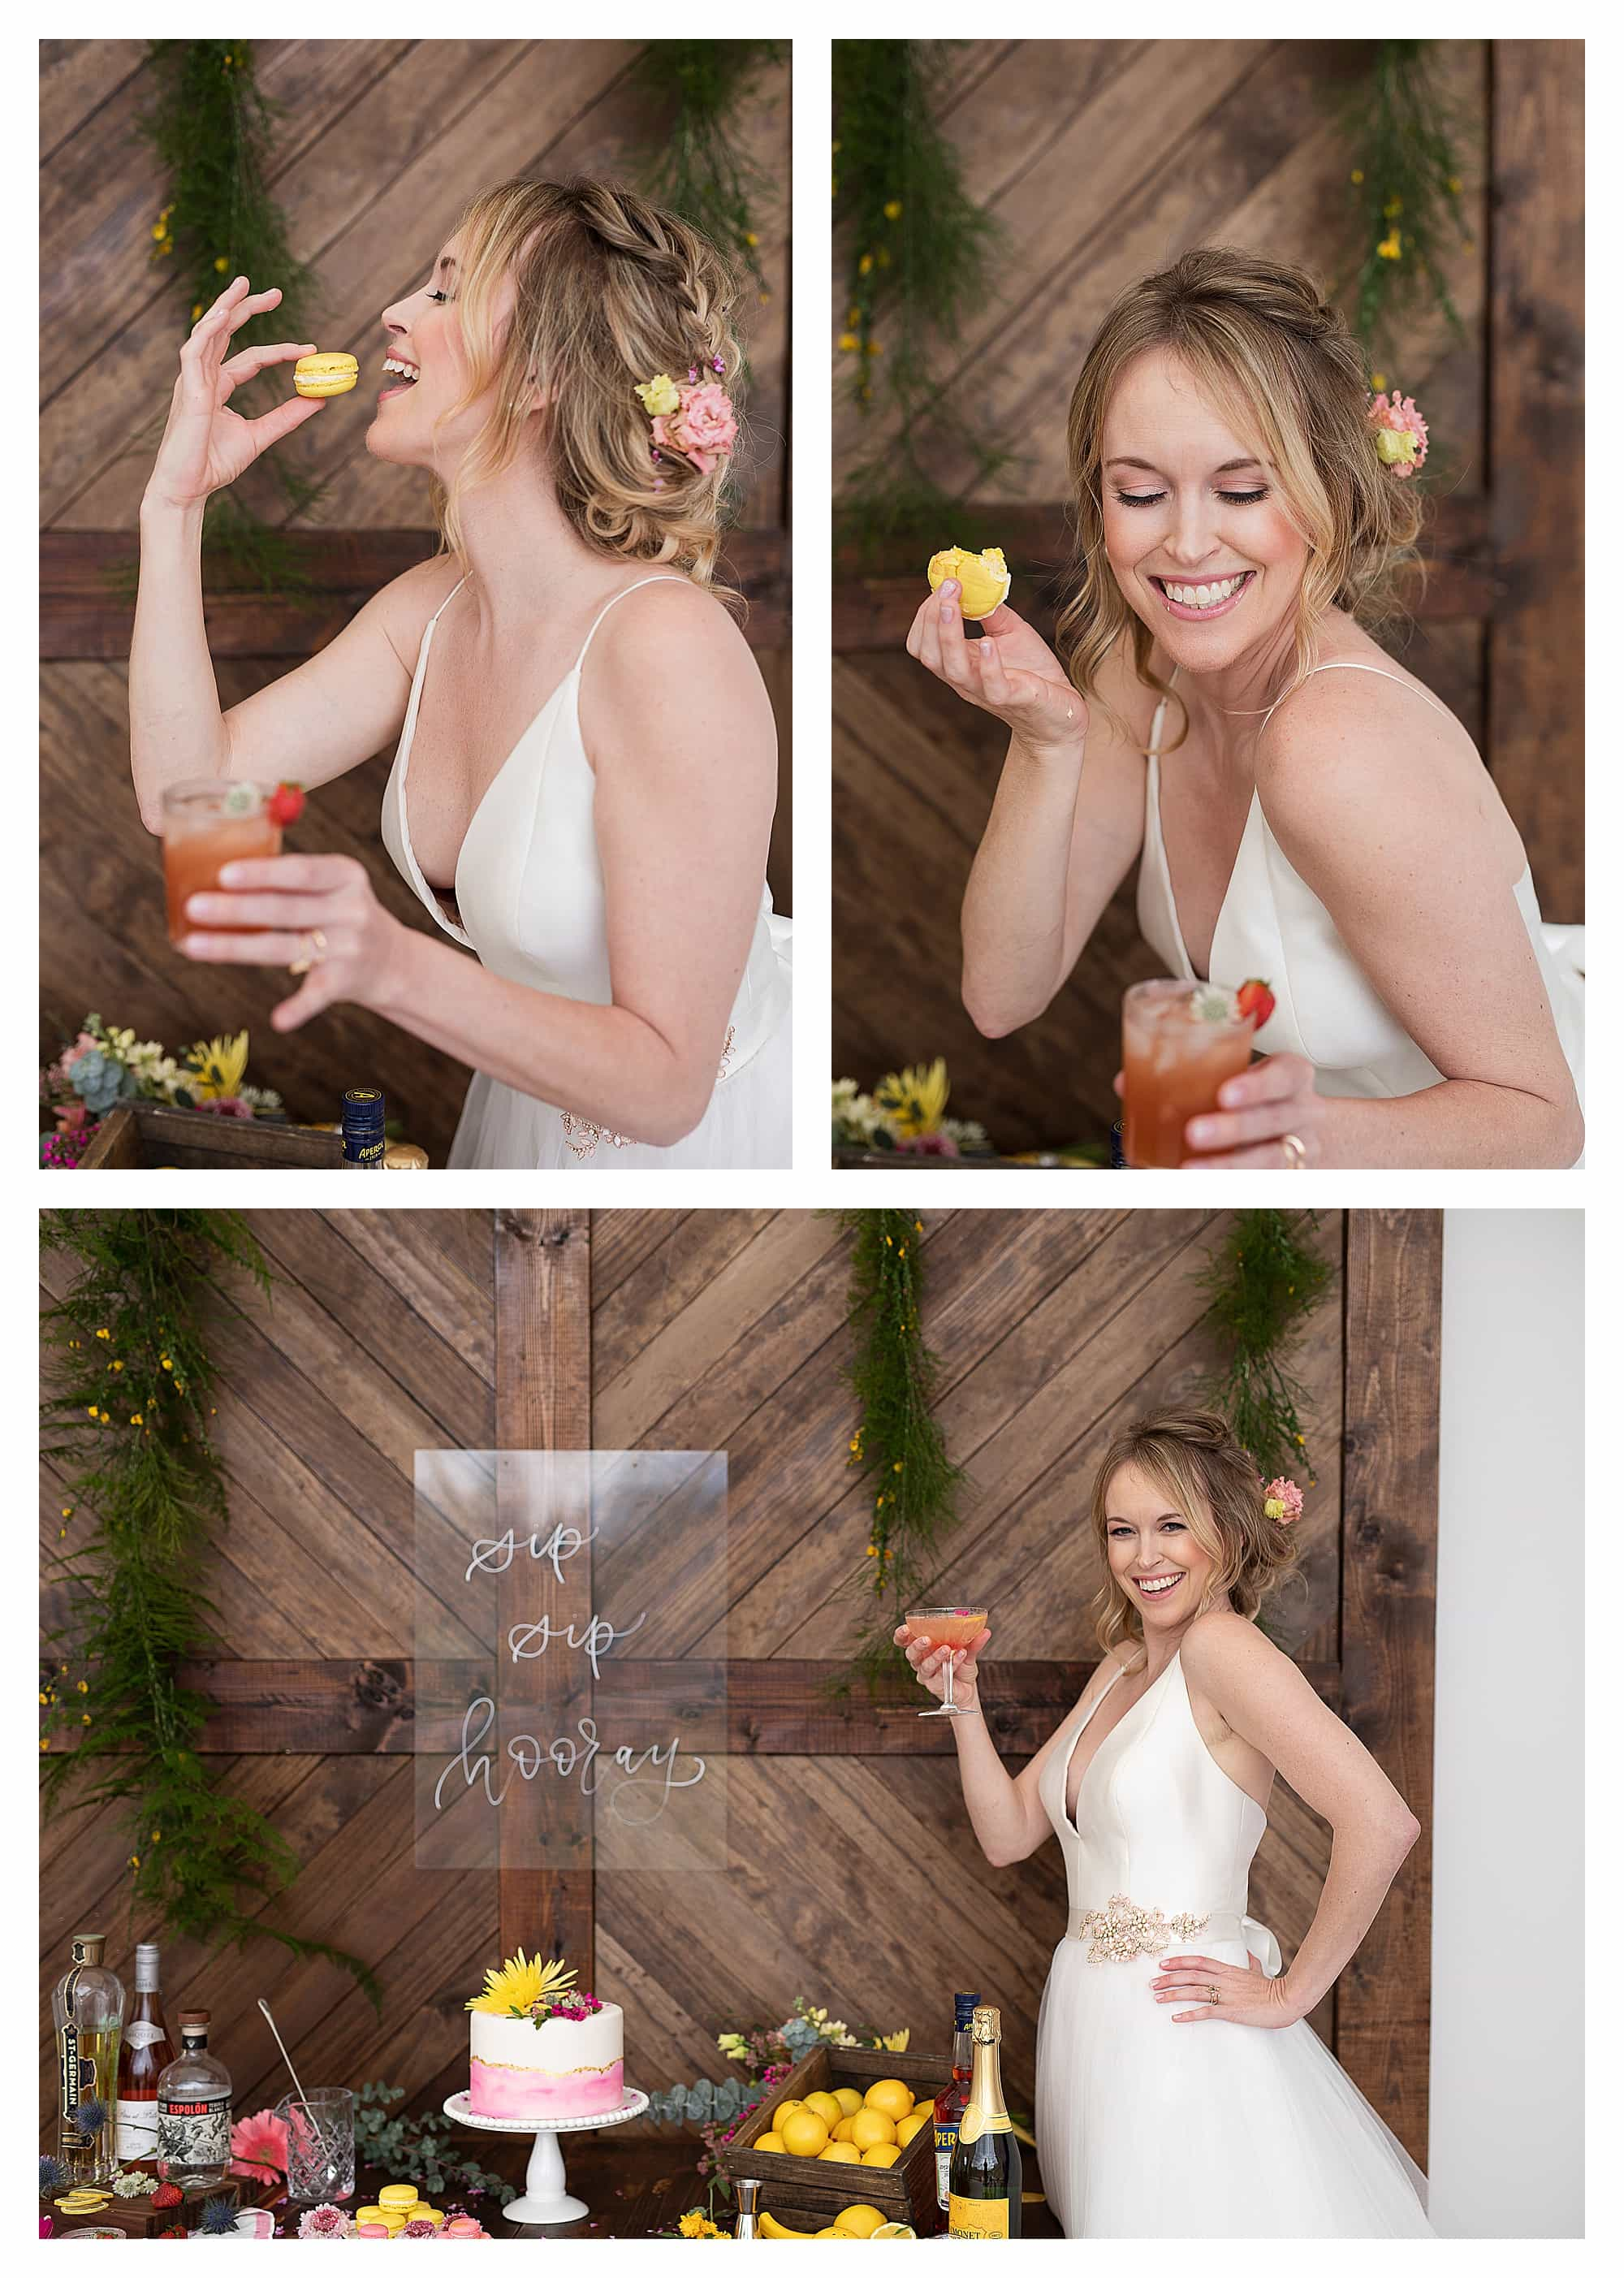 Bride in wedding dress laughing while drinking cocktail and eating yellow macarons beside beautiful wedding cake